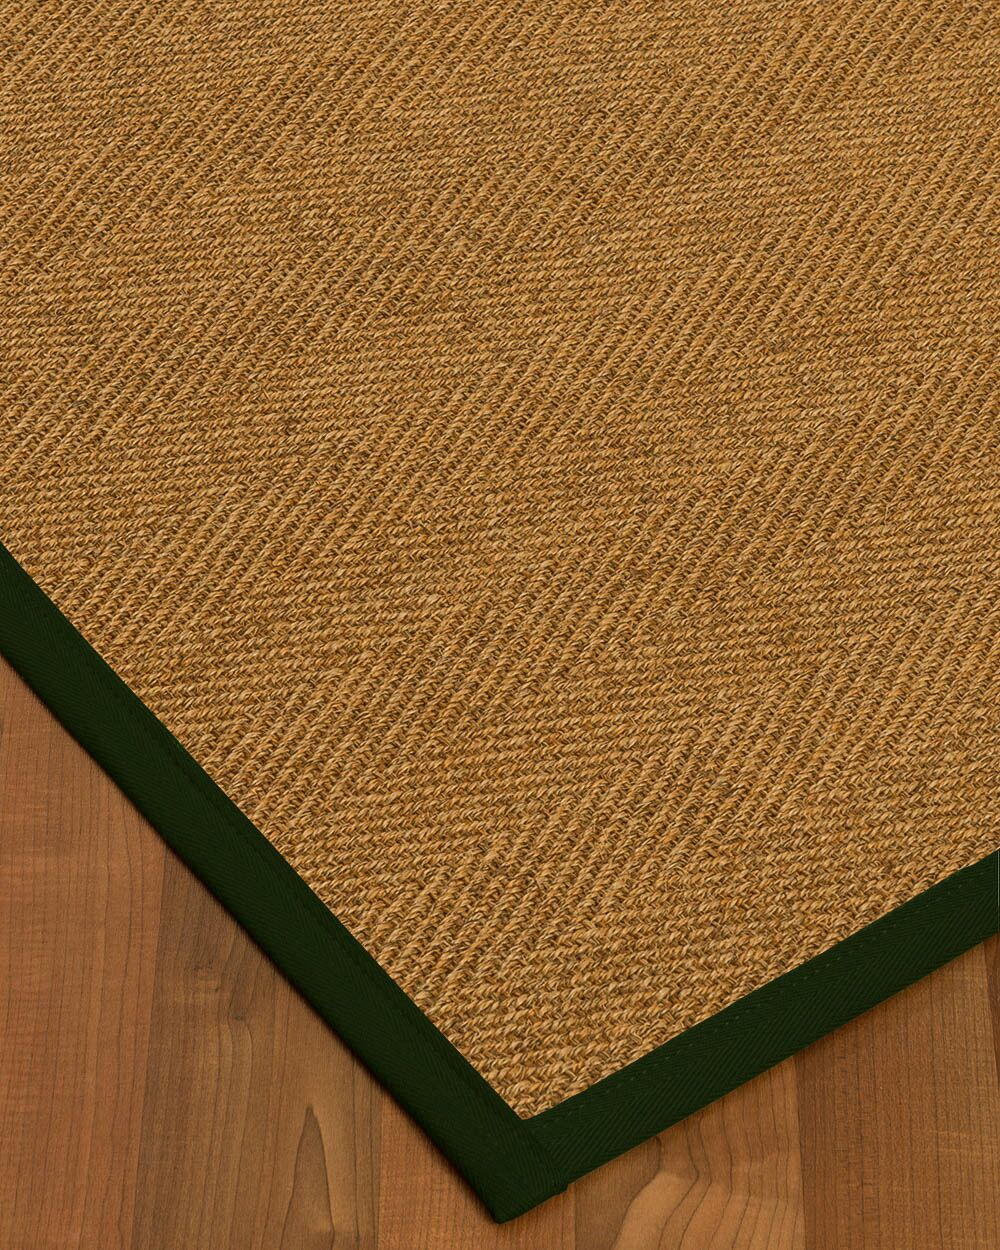 Asmund Border Hand-Woven Brown/Moss Area Rug Rug Size: Rectangle 6' x 9', Rug Pad Included: Yes